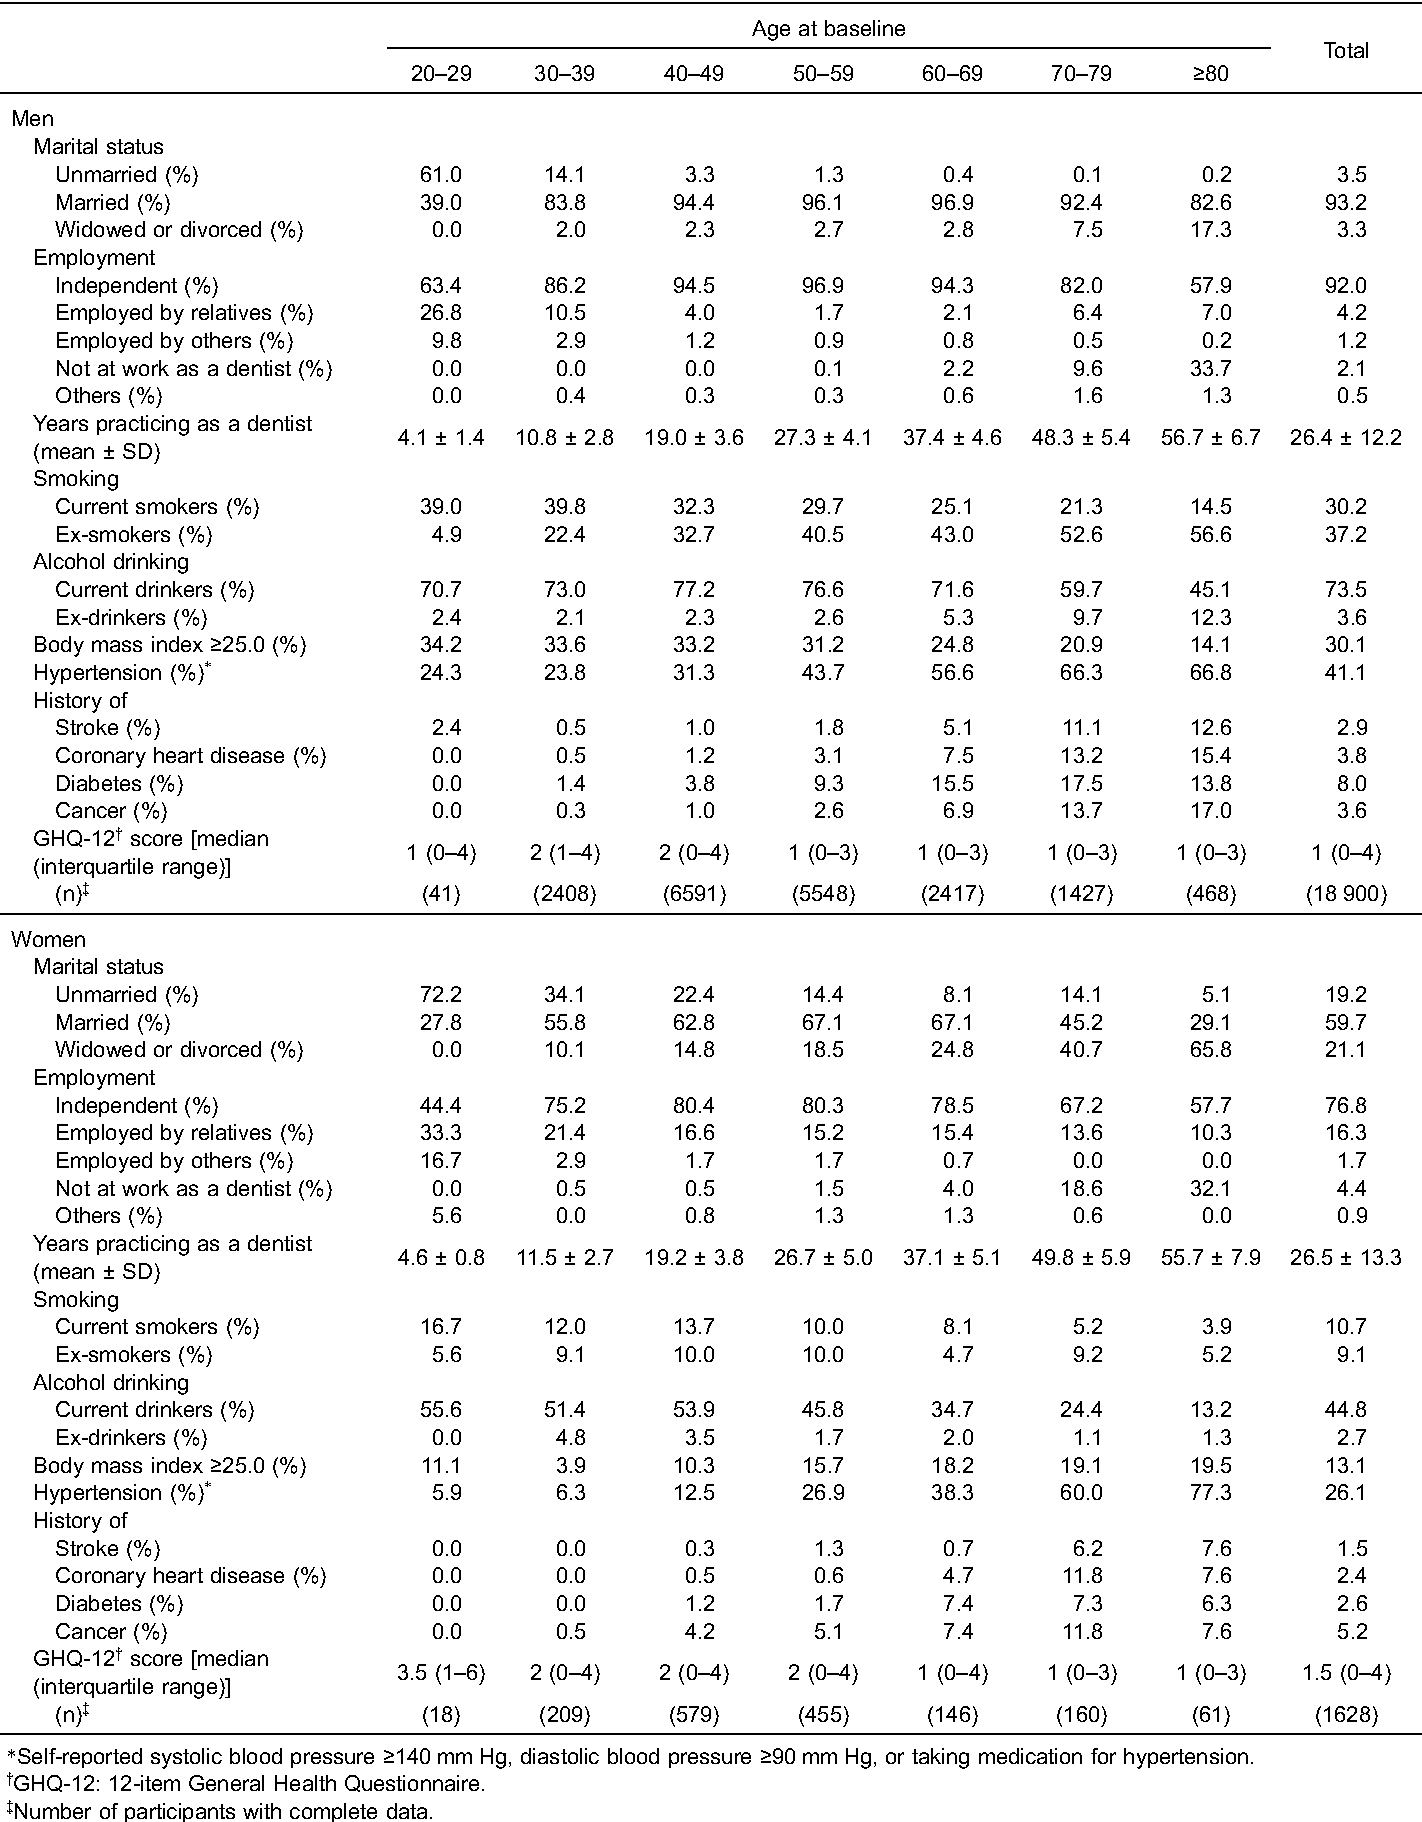 Table 2. Selected baseline demographic, lifestyle, and medical characteristics of participants by sex and age